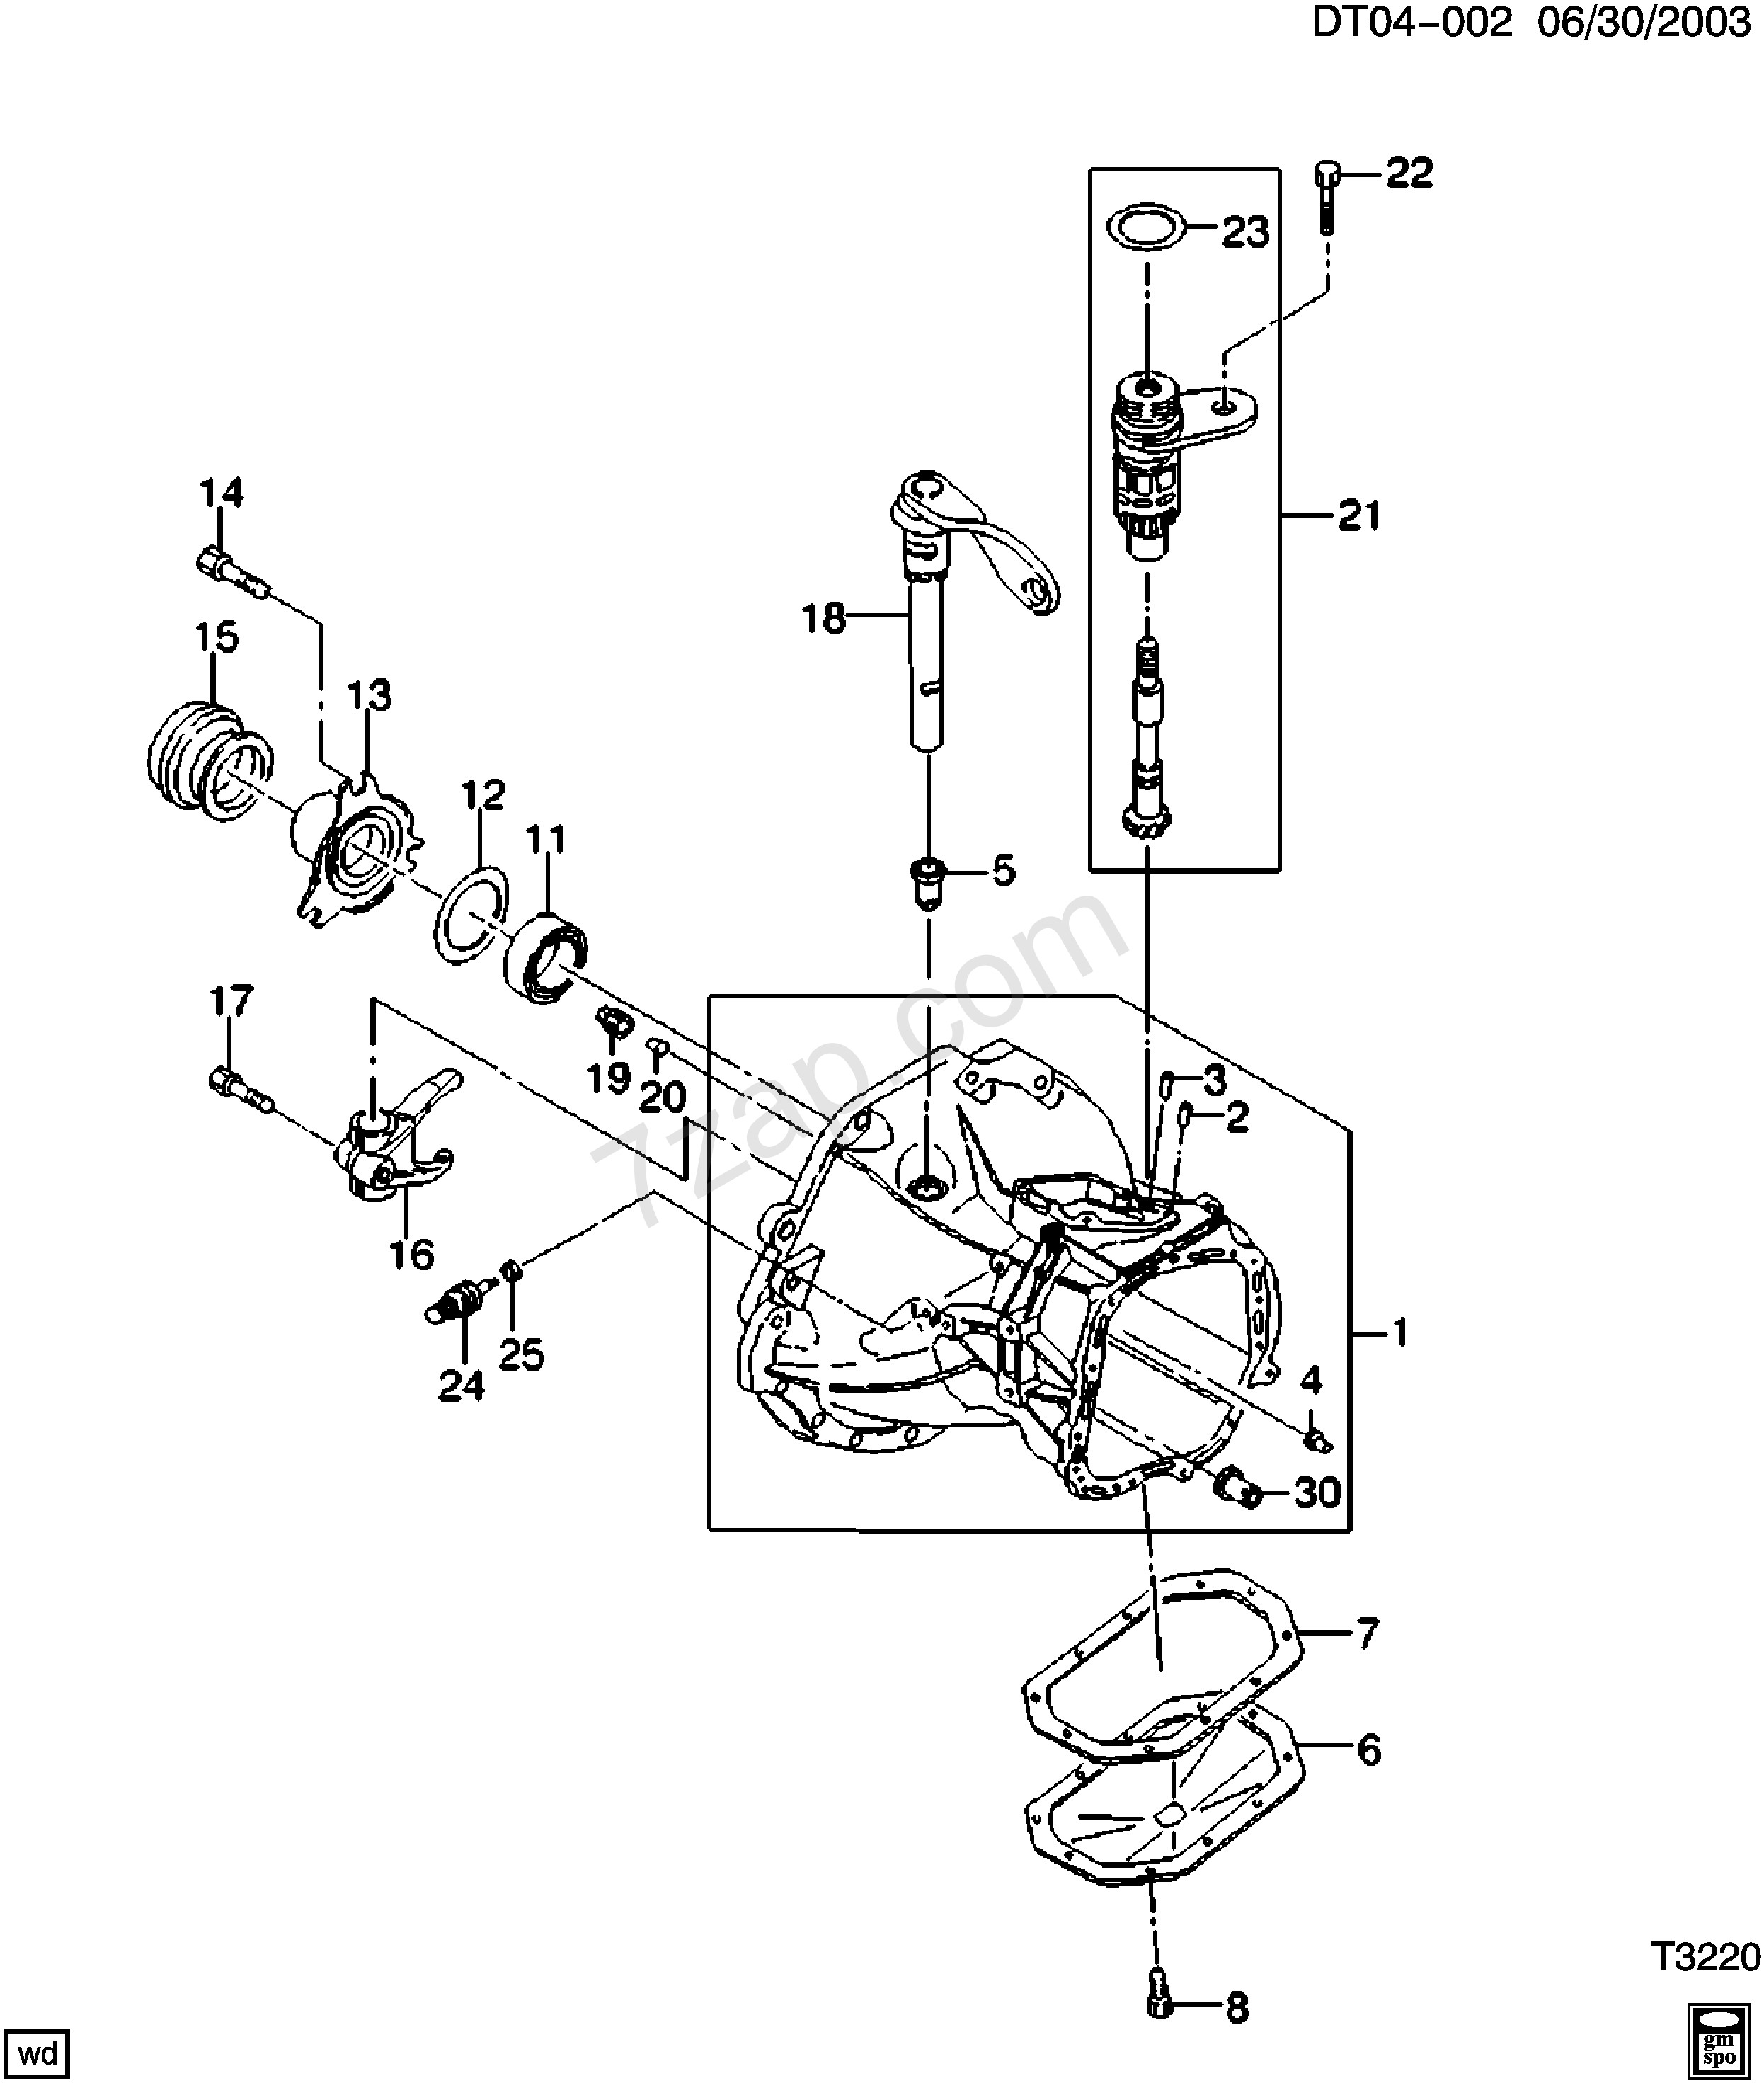 Manual Transmission Clutch Diagram 2004 2008 T 5 Speed Manual Transmission Part 1 Mlm Clutch Release Of Manual Transmission Clutch Diagram